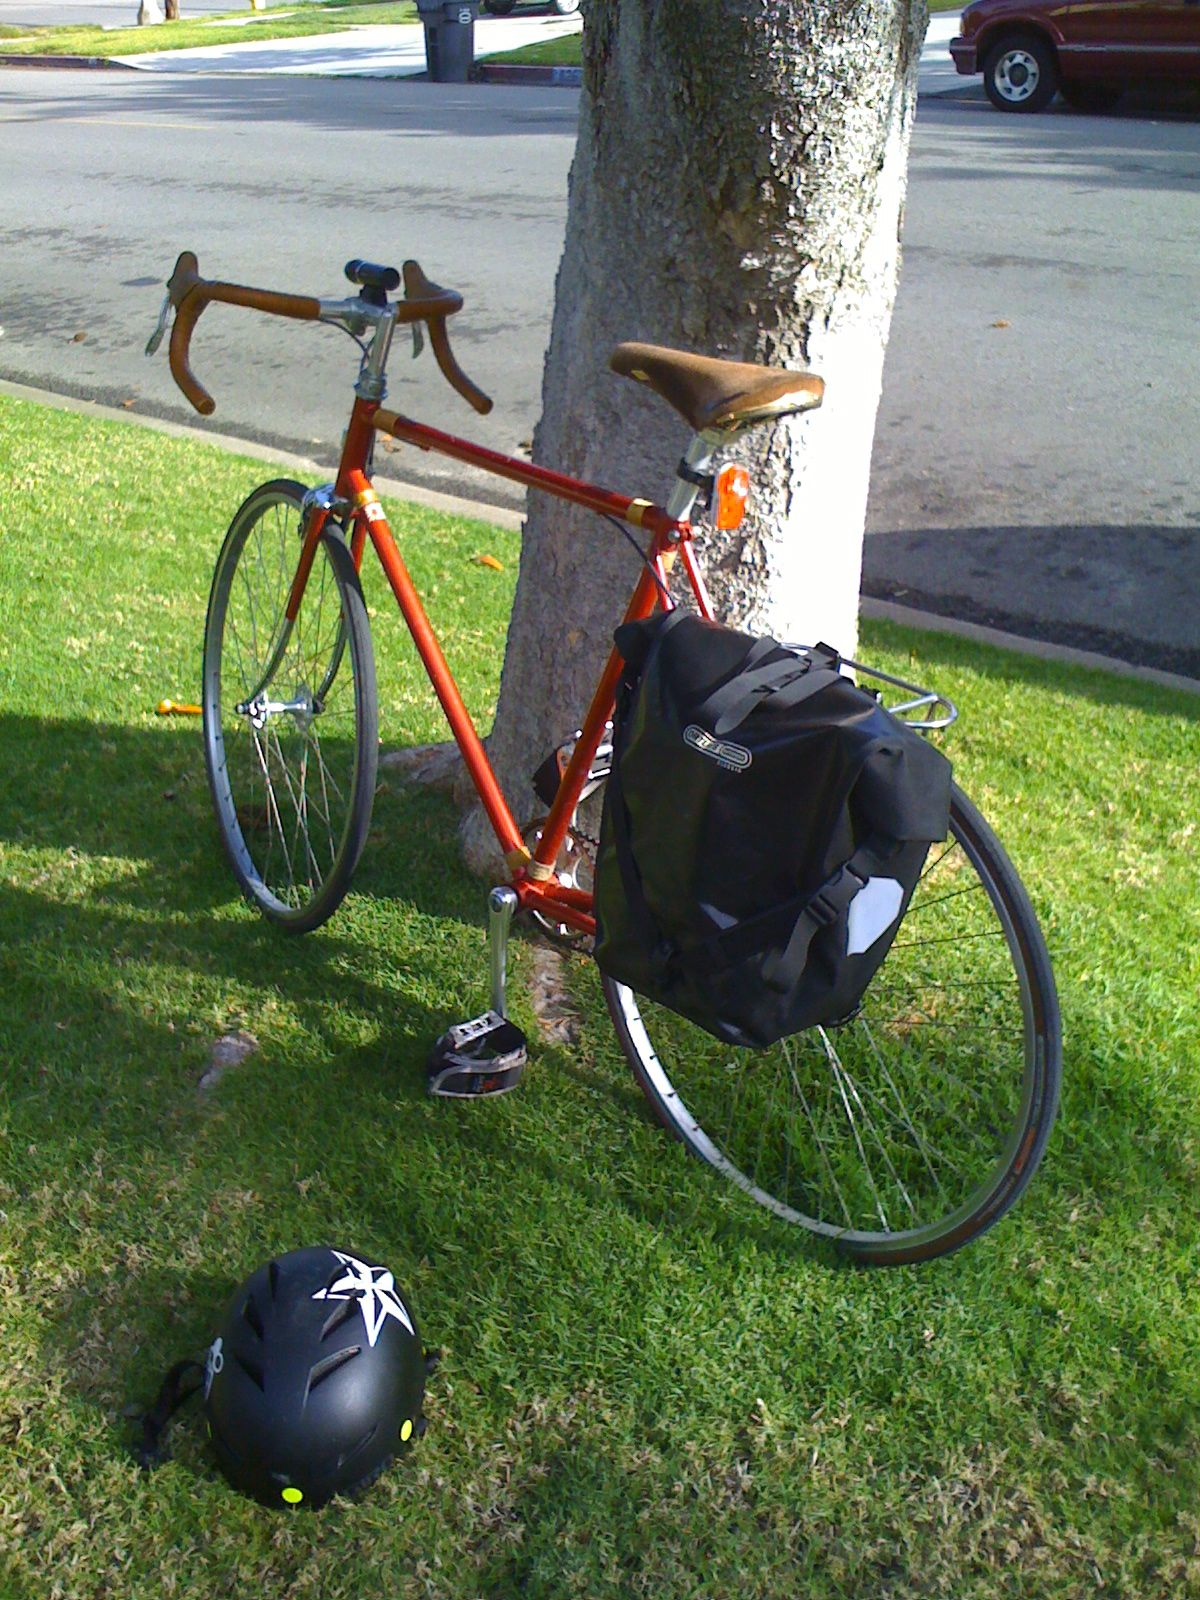 Bike Snob Lone Wolf While this bike works well on